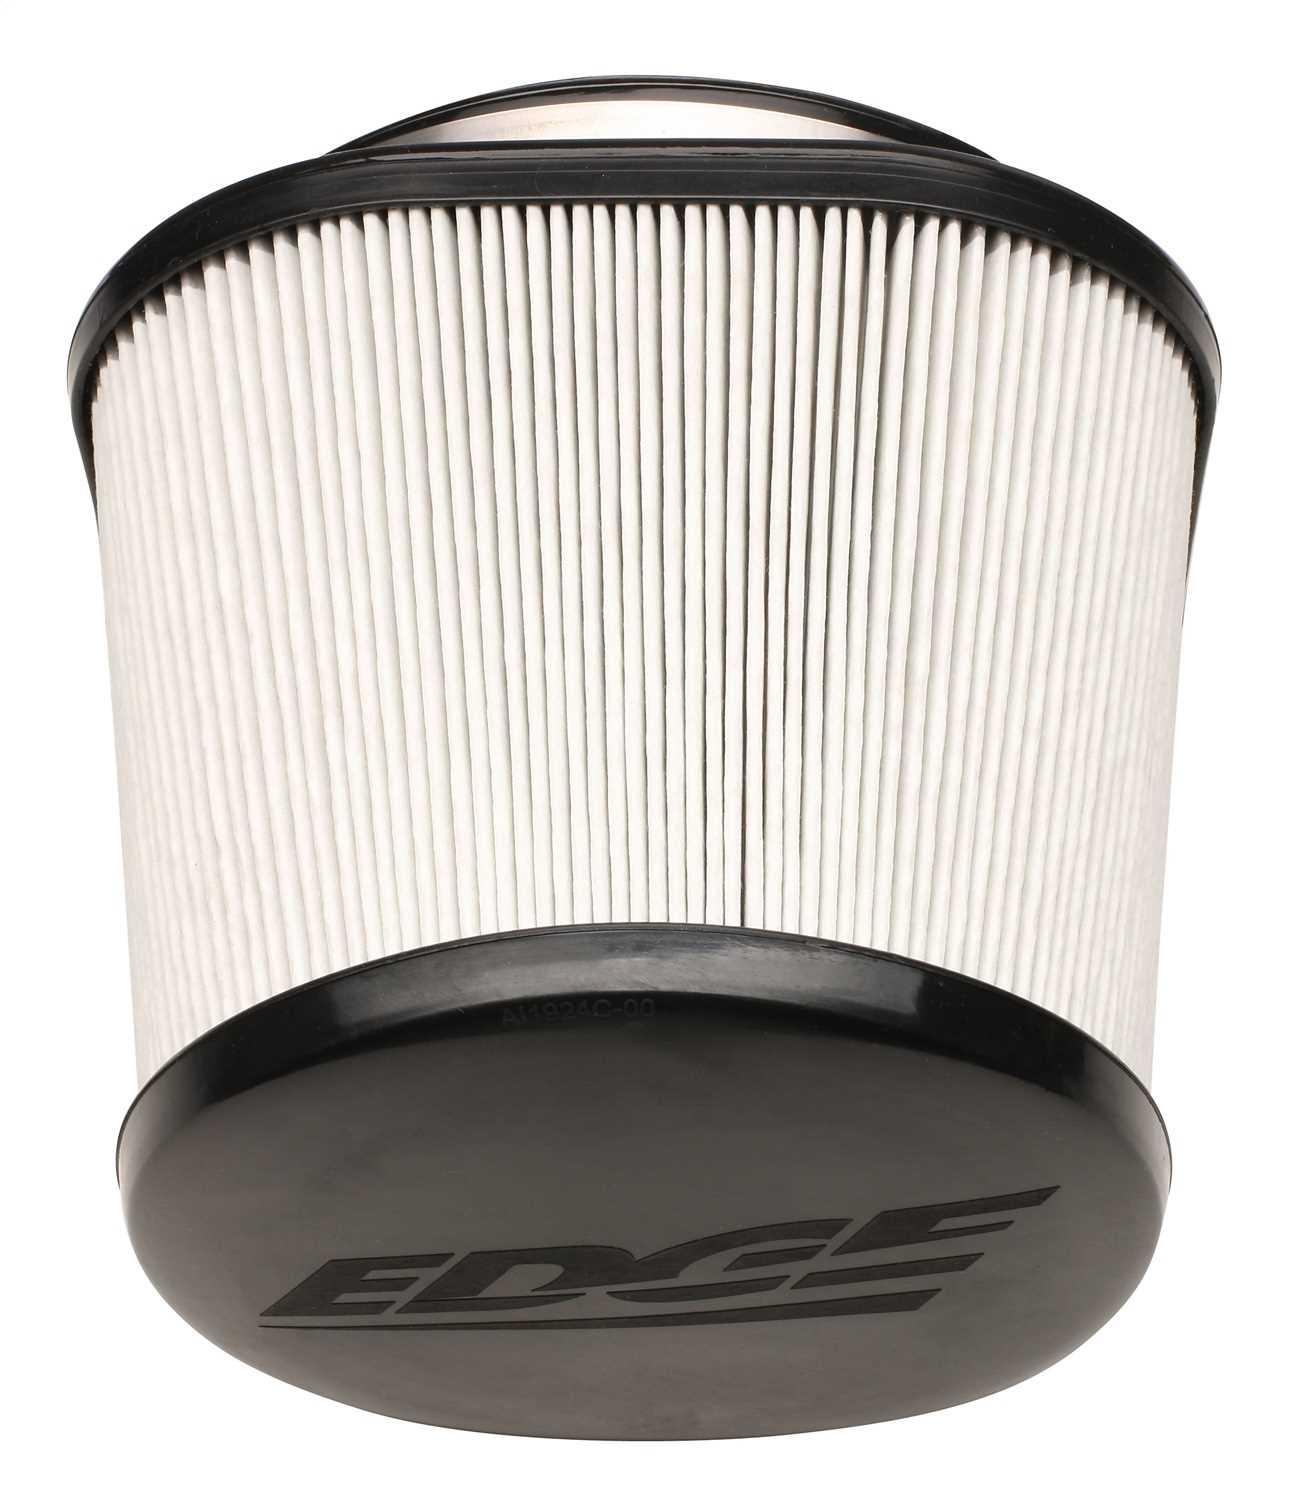 88001-D Edge Products Jammer Filter Wrap Covers